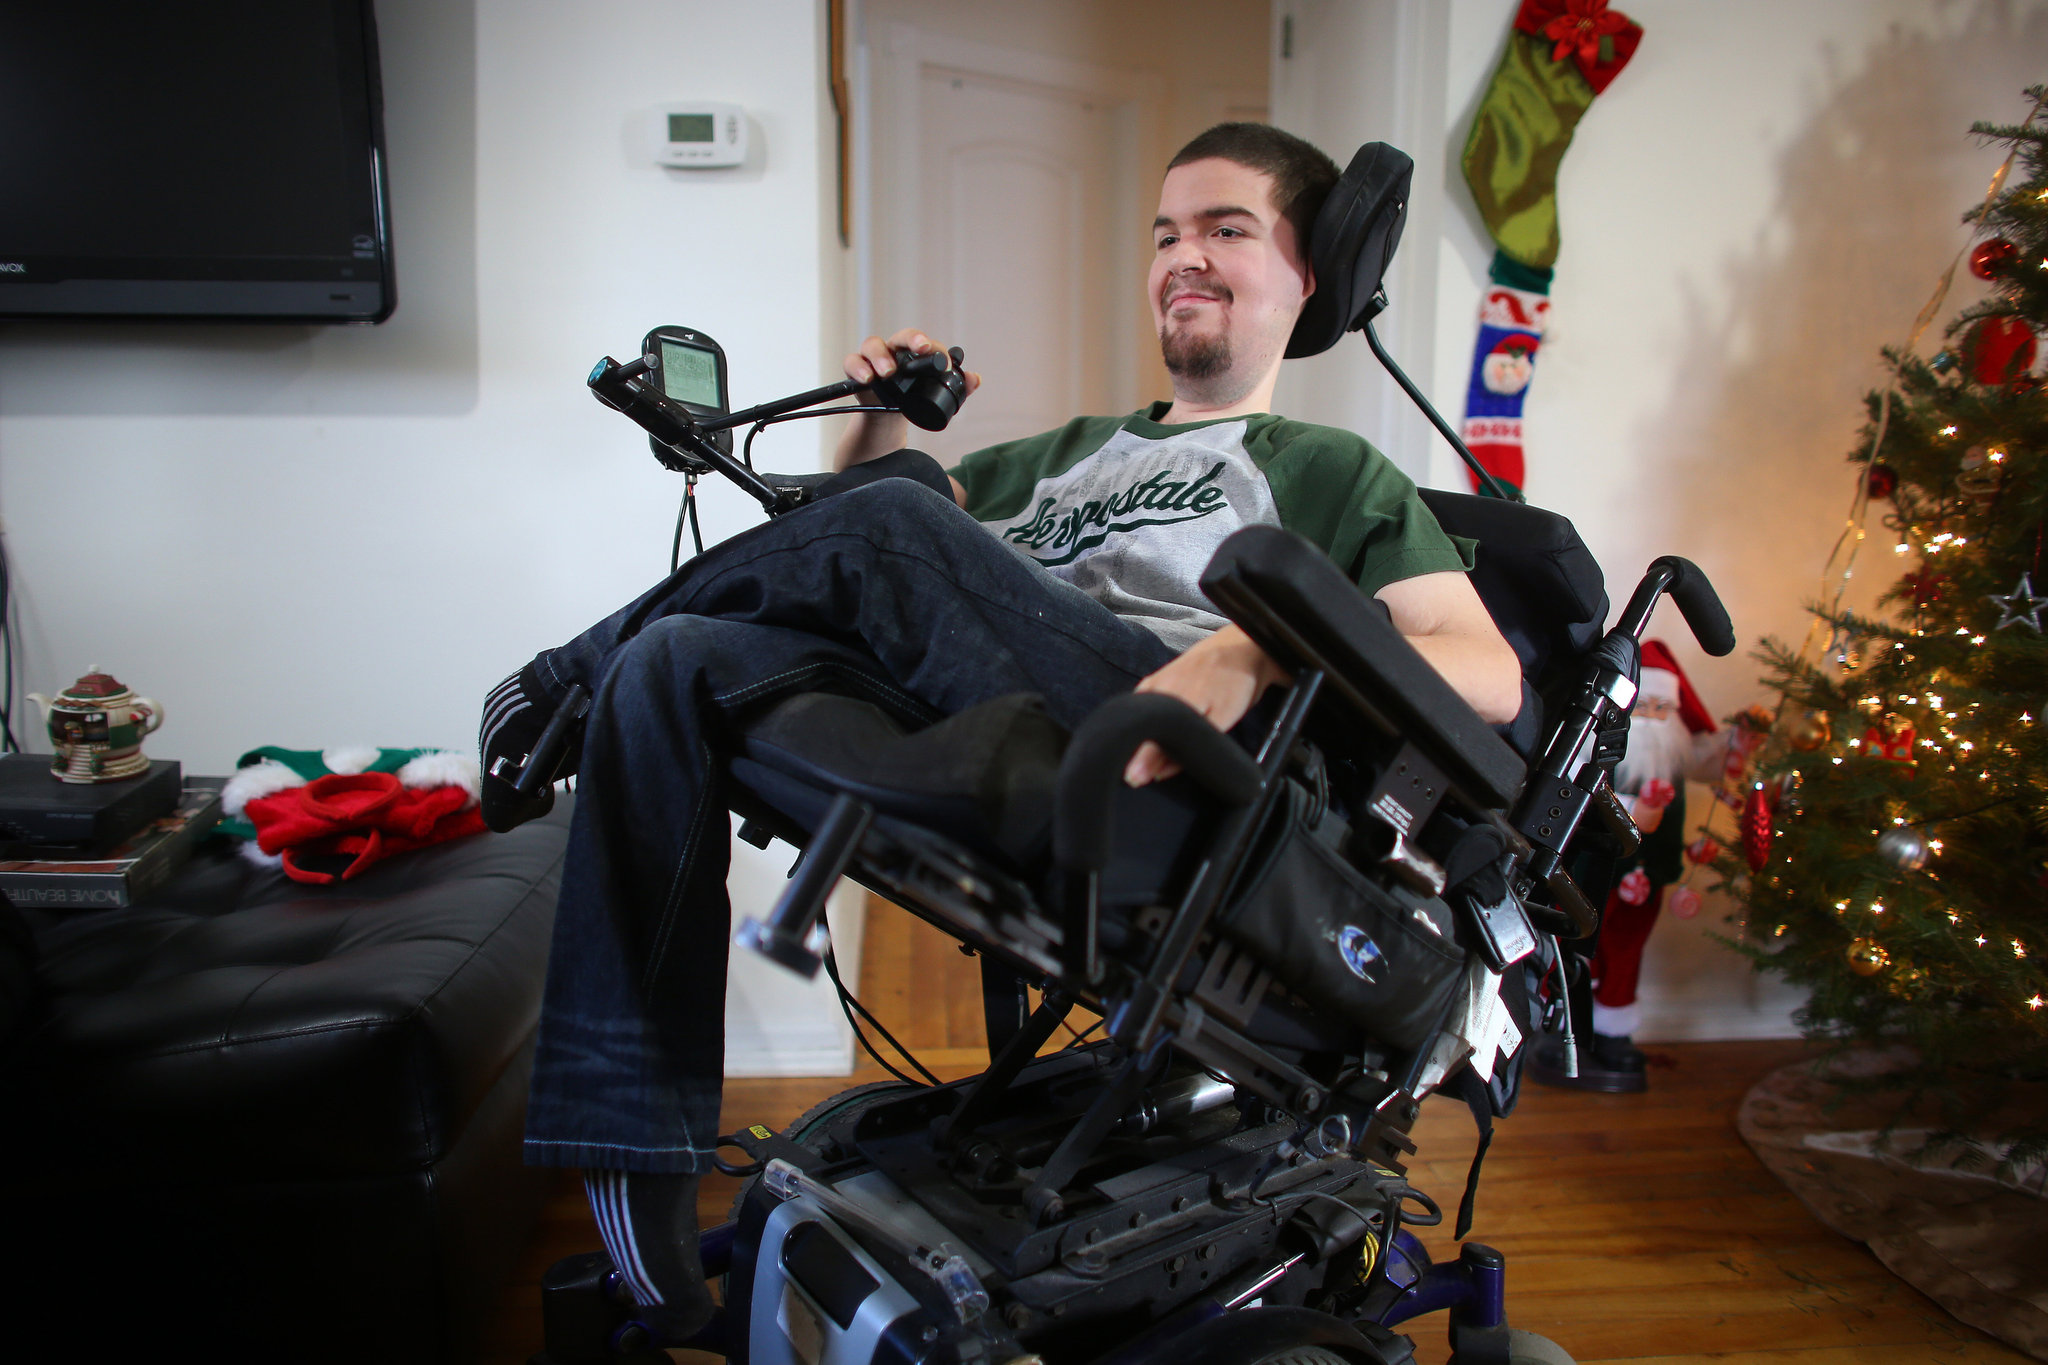 Duchenne Muscular Dystrophy News Hurricane Sandy Victim Ill Is Restricted In New Home